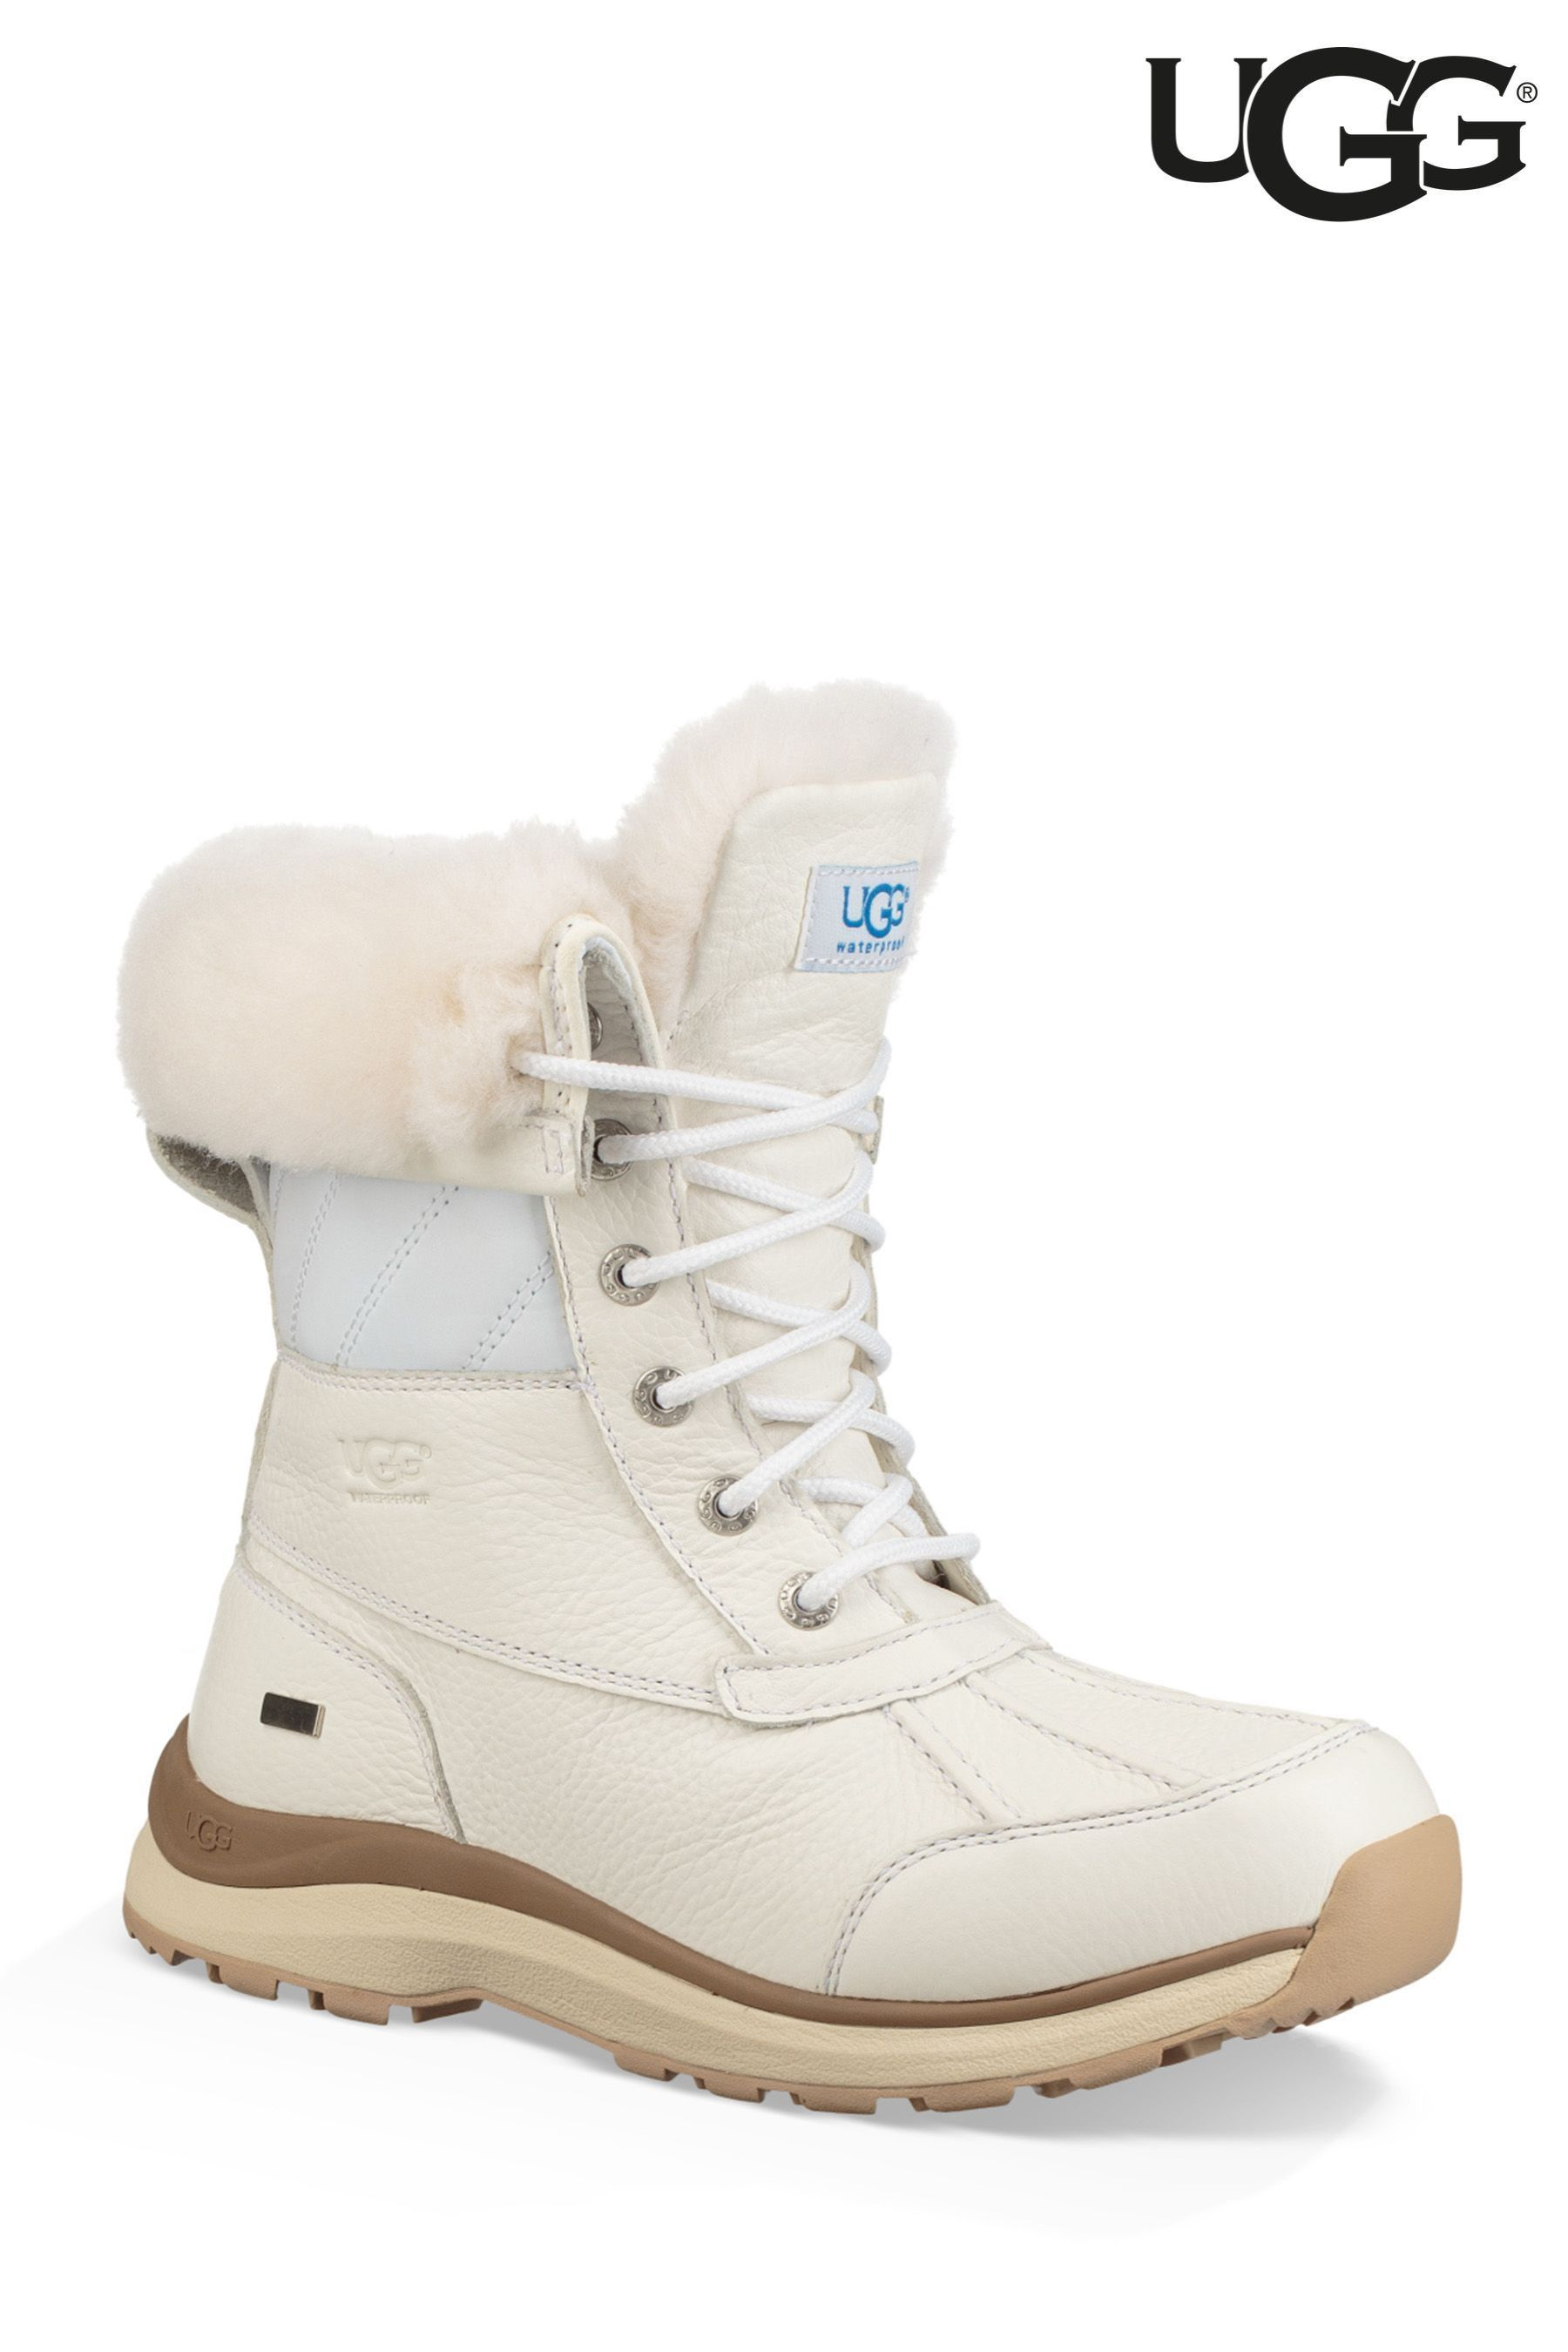 6794f0d7d2e Womens UGG Adirondack White Quilt Snow Boot - White | Products ...